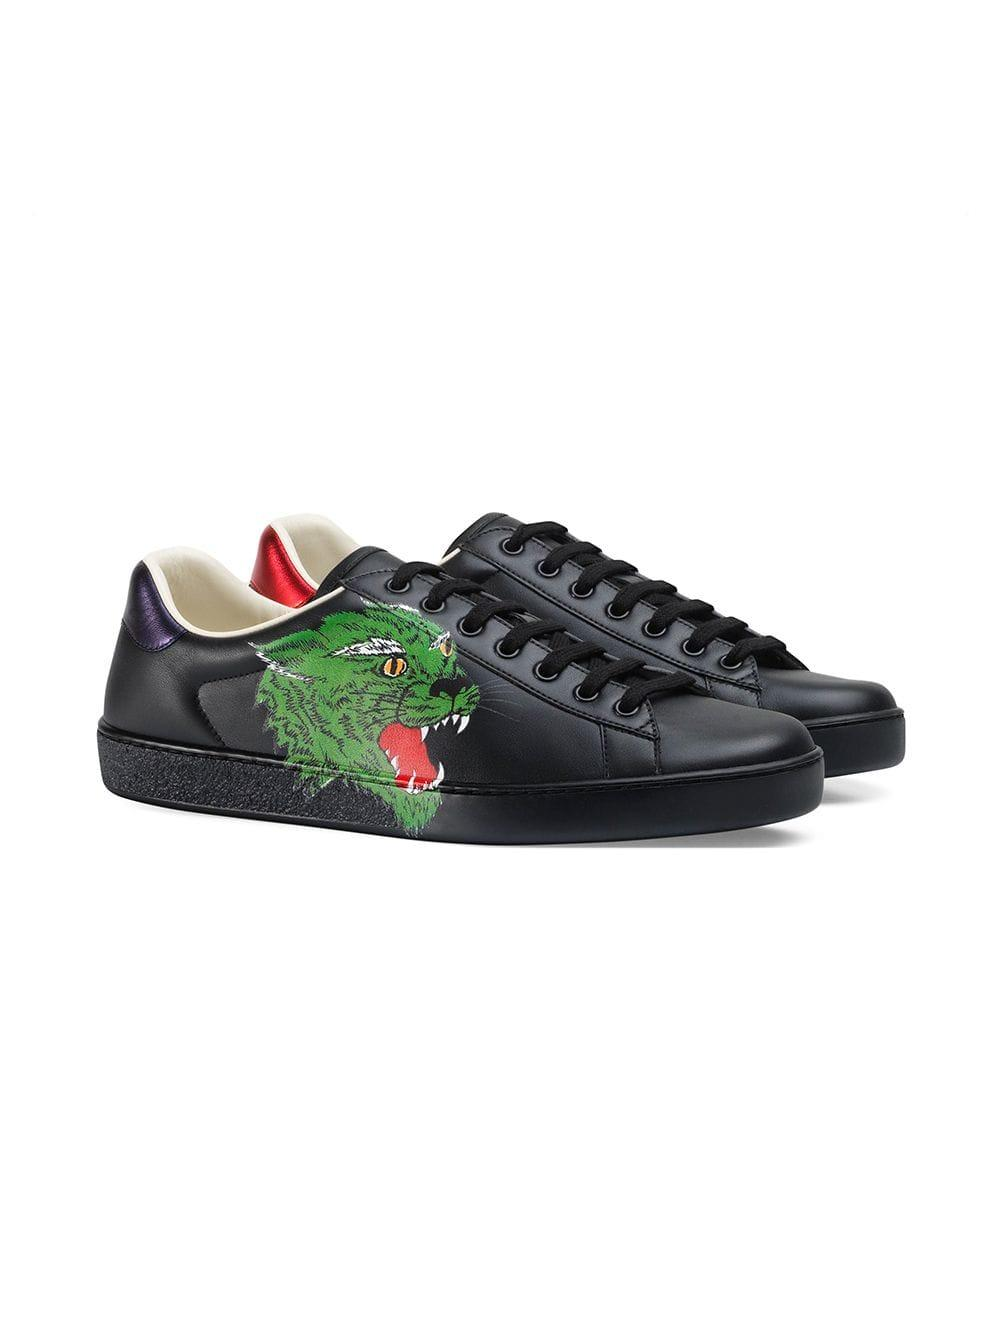 cee039521 Lyst - Gucci Ace Sneaker With Panther in Black for Men